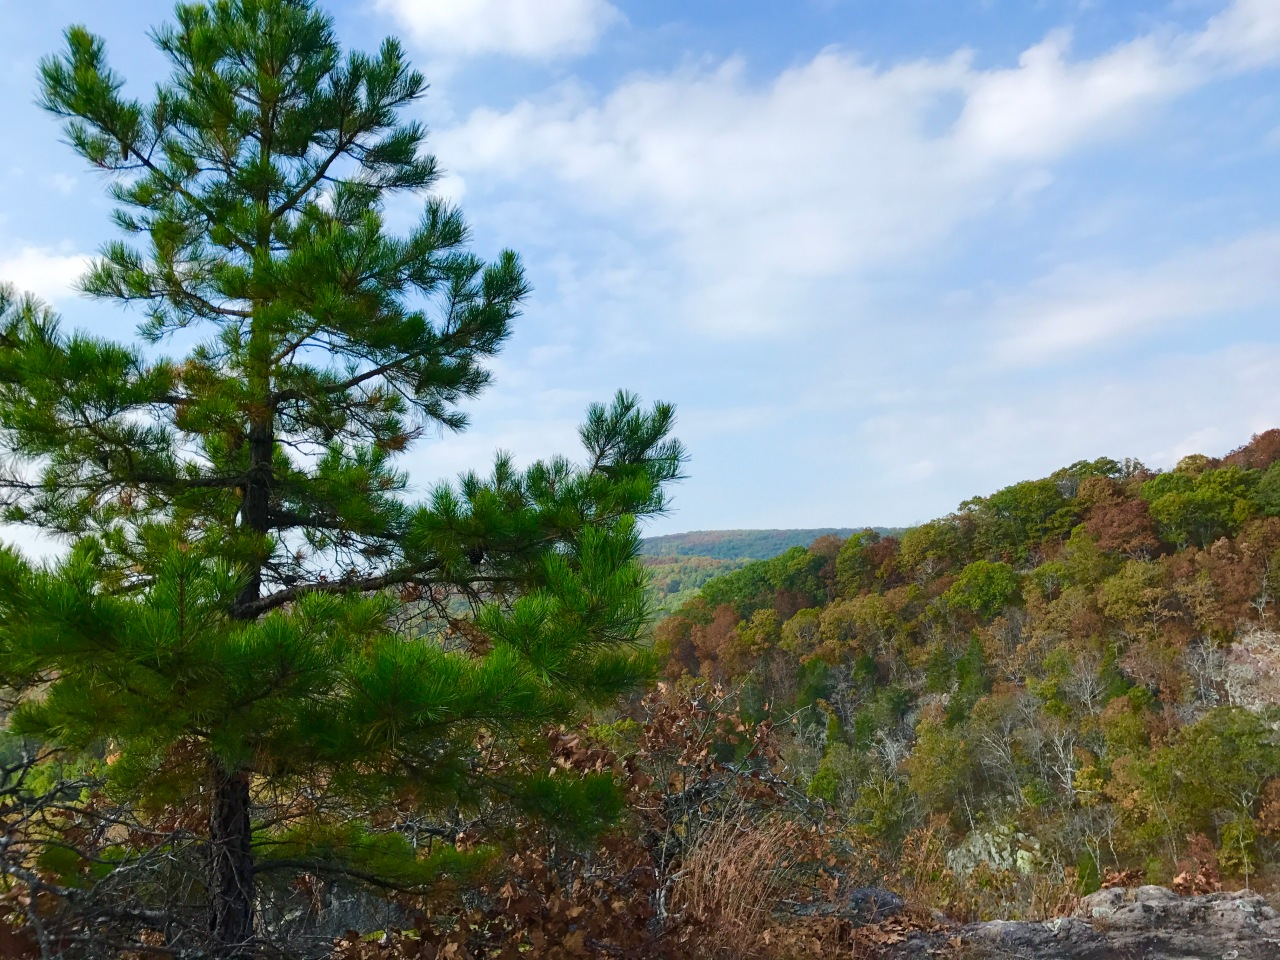 Ketcherside Mountain Conservation Area – Missouri